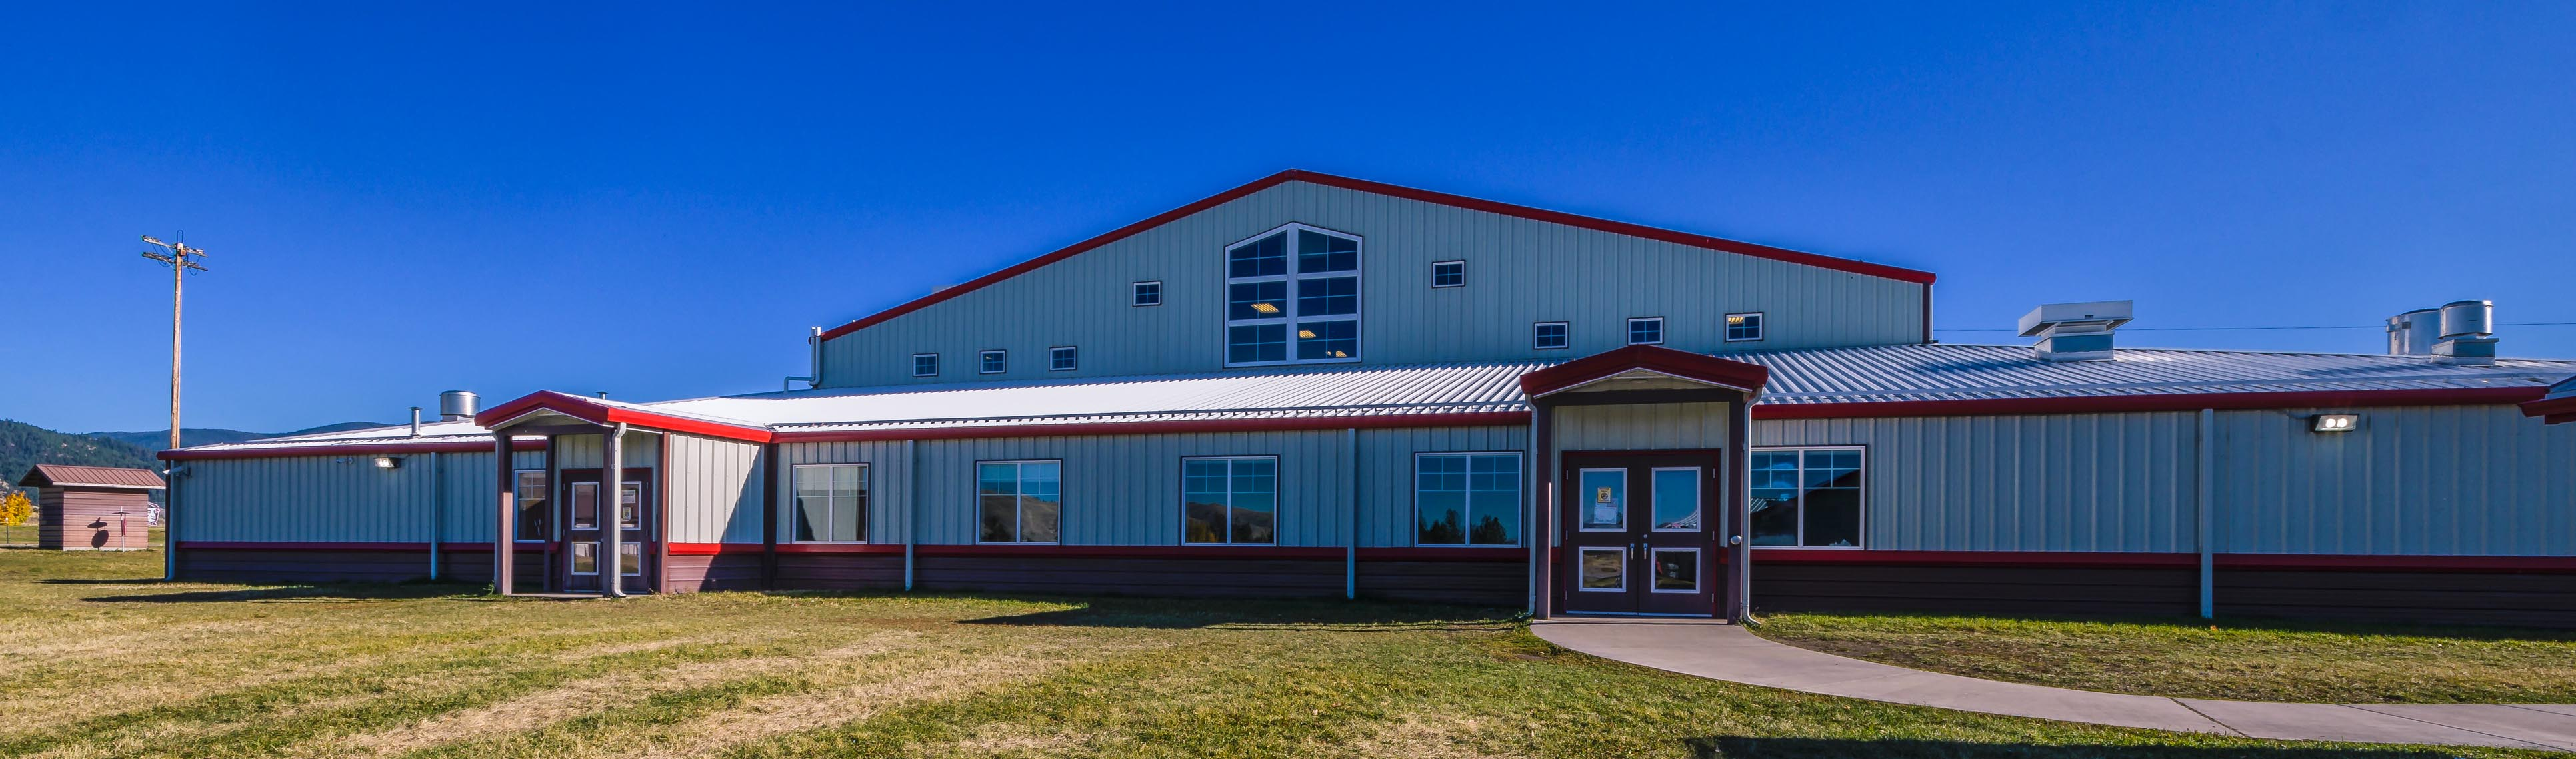 Arlee Elementary By Sirius Construction